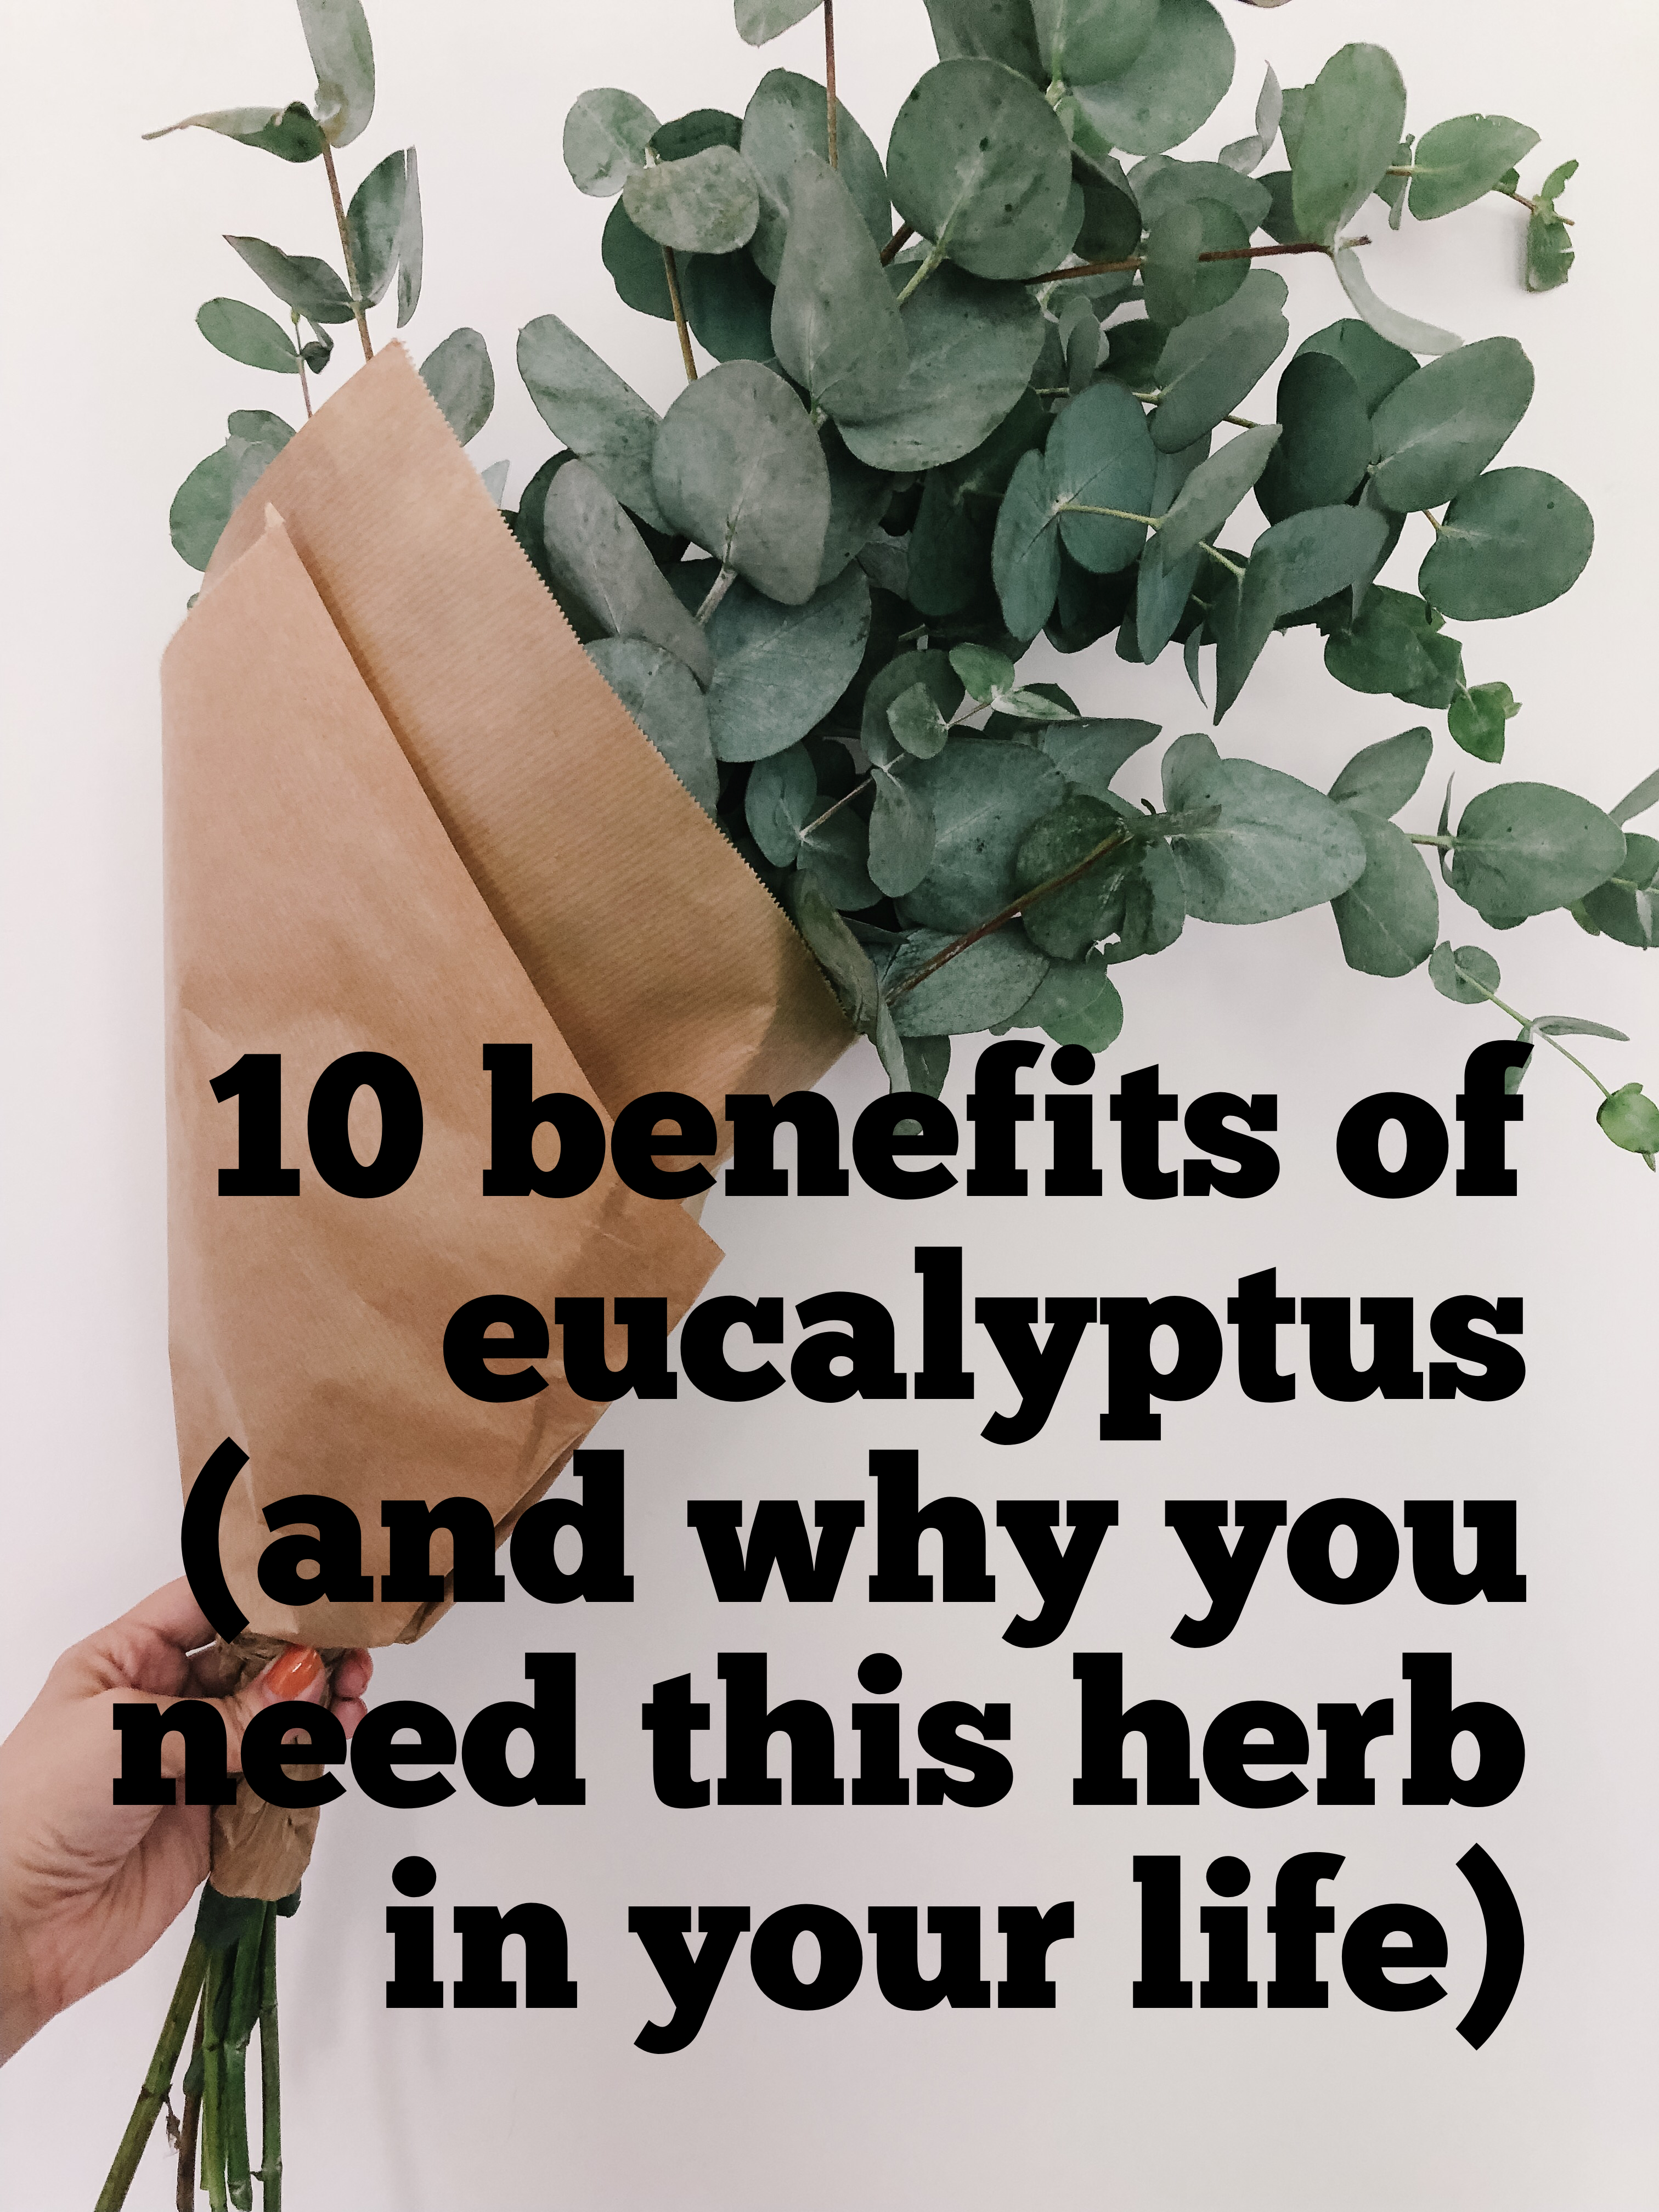 10 Benefits Of Eucalyptus And Why You Need This Herb In Your Life 365 Days Of Wellbeing Plant Benefits Herbal Education Eucalyptus Plant Indoor